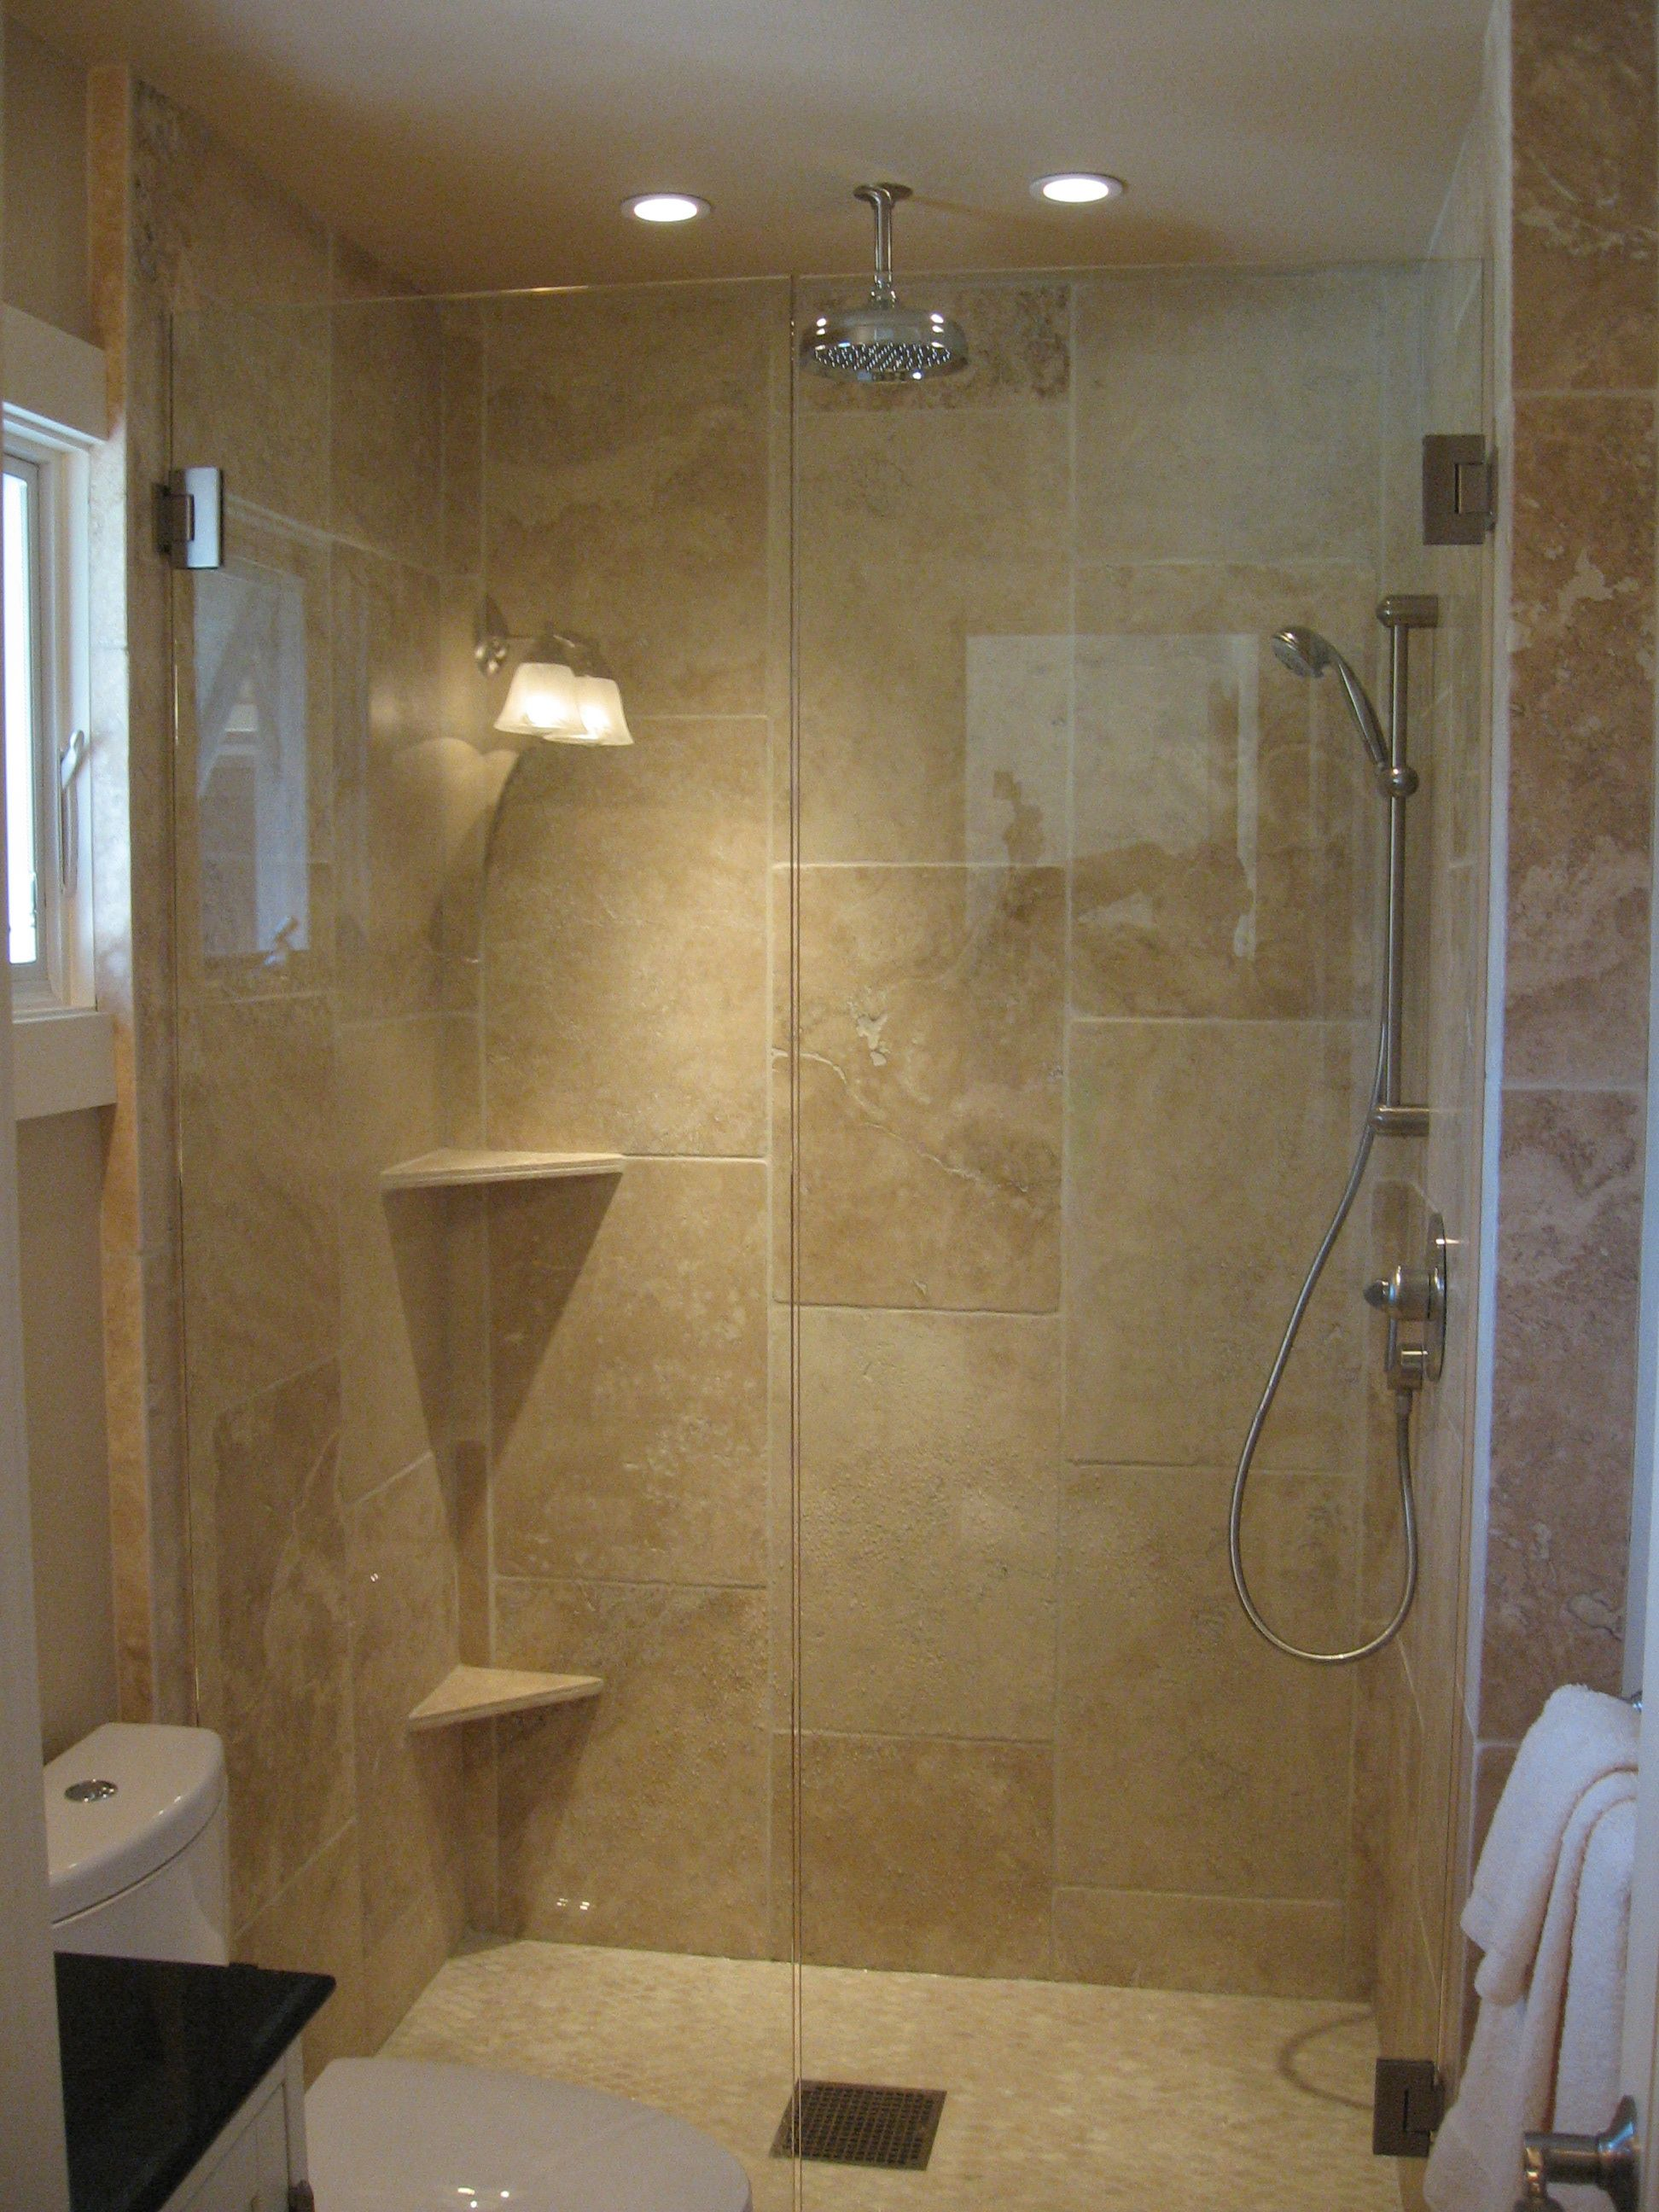 Merveilleux Watsonville Bathroom Remodel Project. Large Tumbled Travertine Tiles  Arranged In Waterfall Pattern. Ceiling Mount Shower Head, Frameless Glass  Shower Doors.